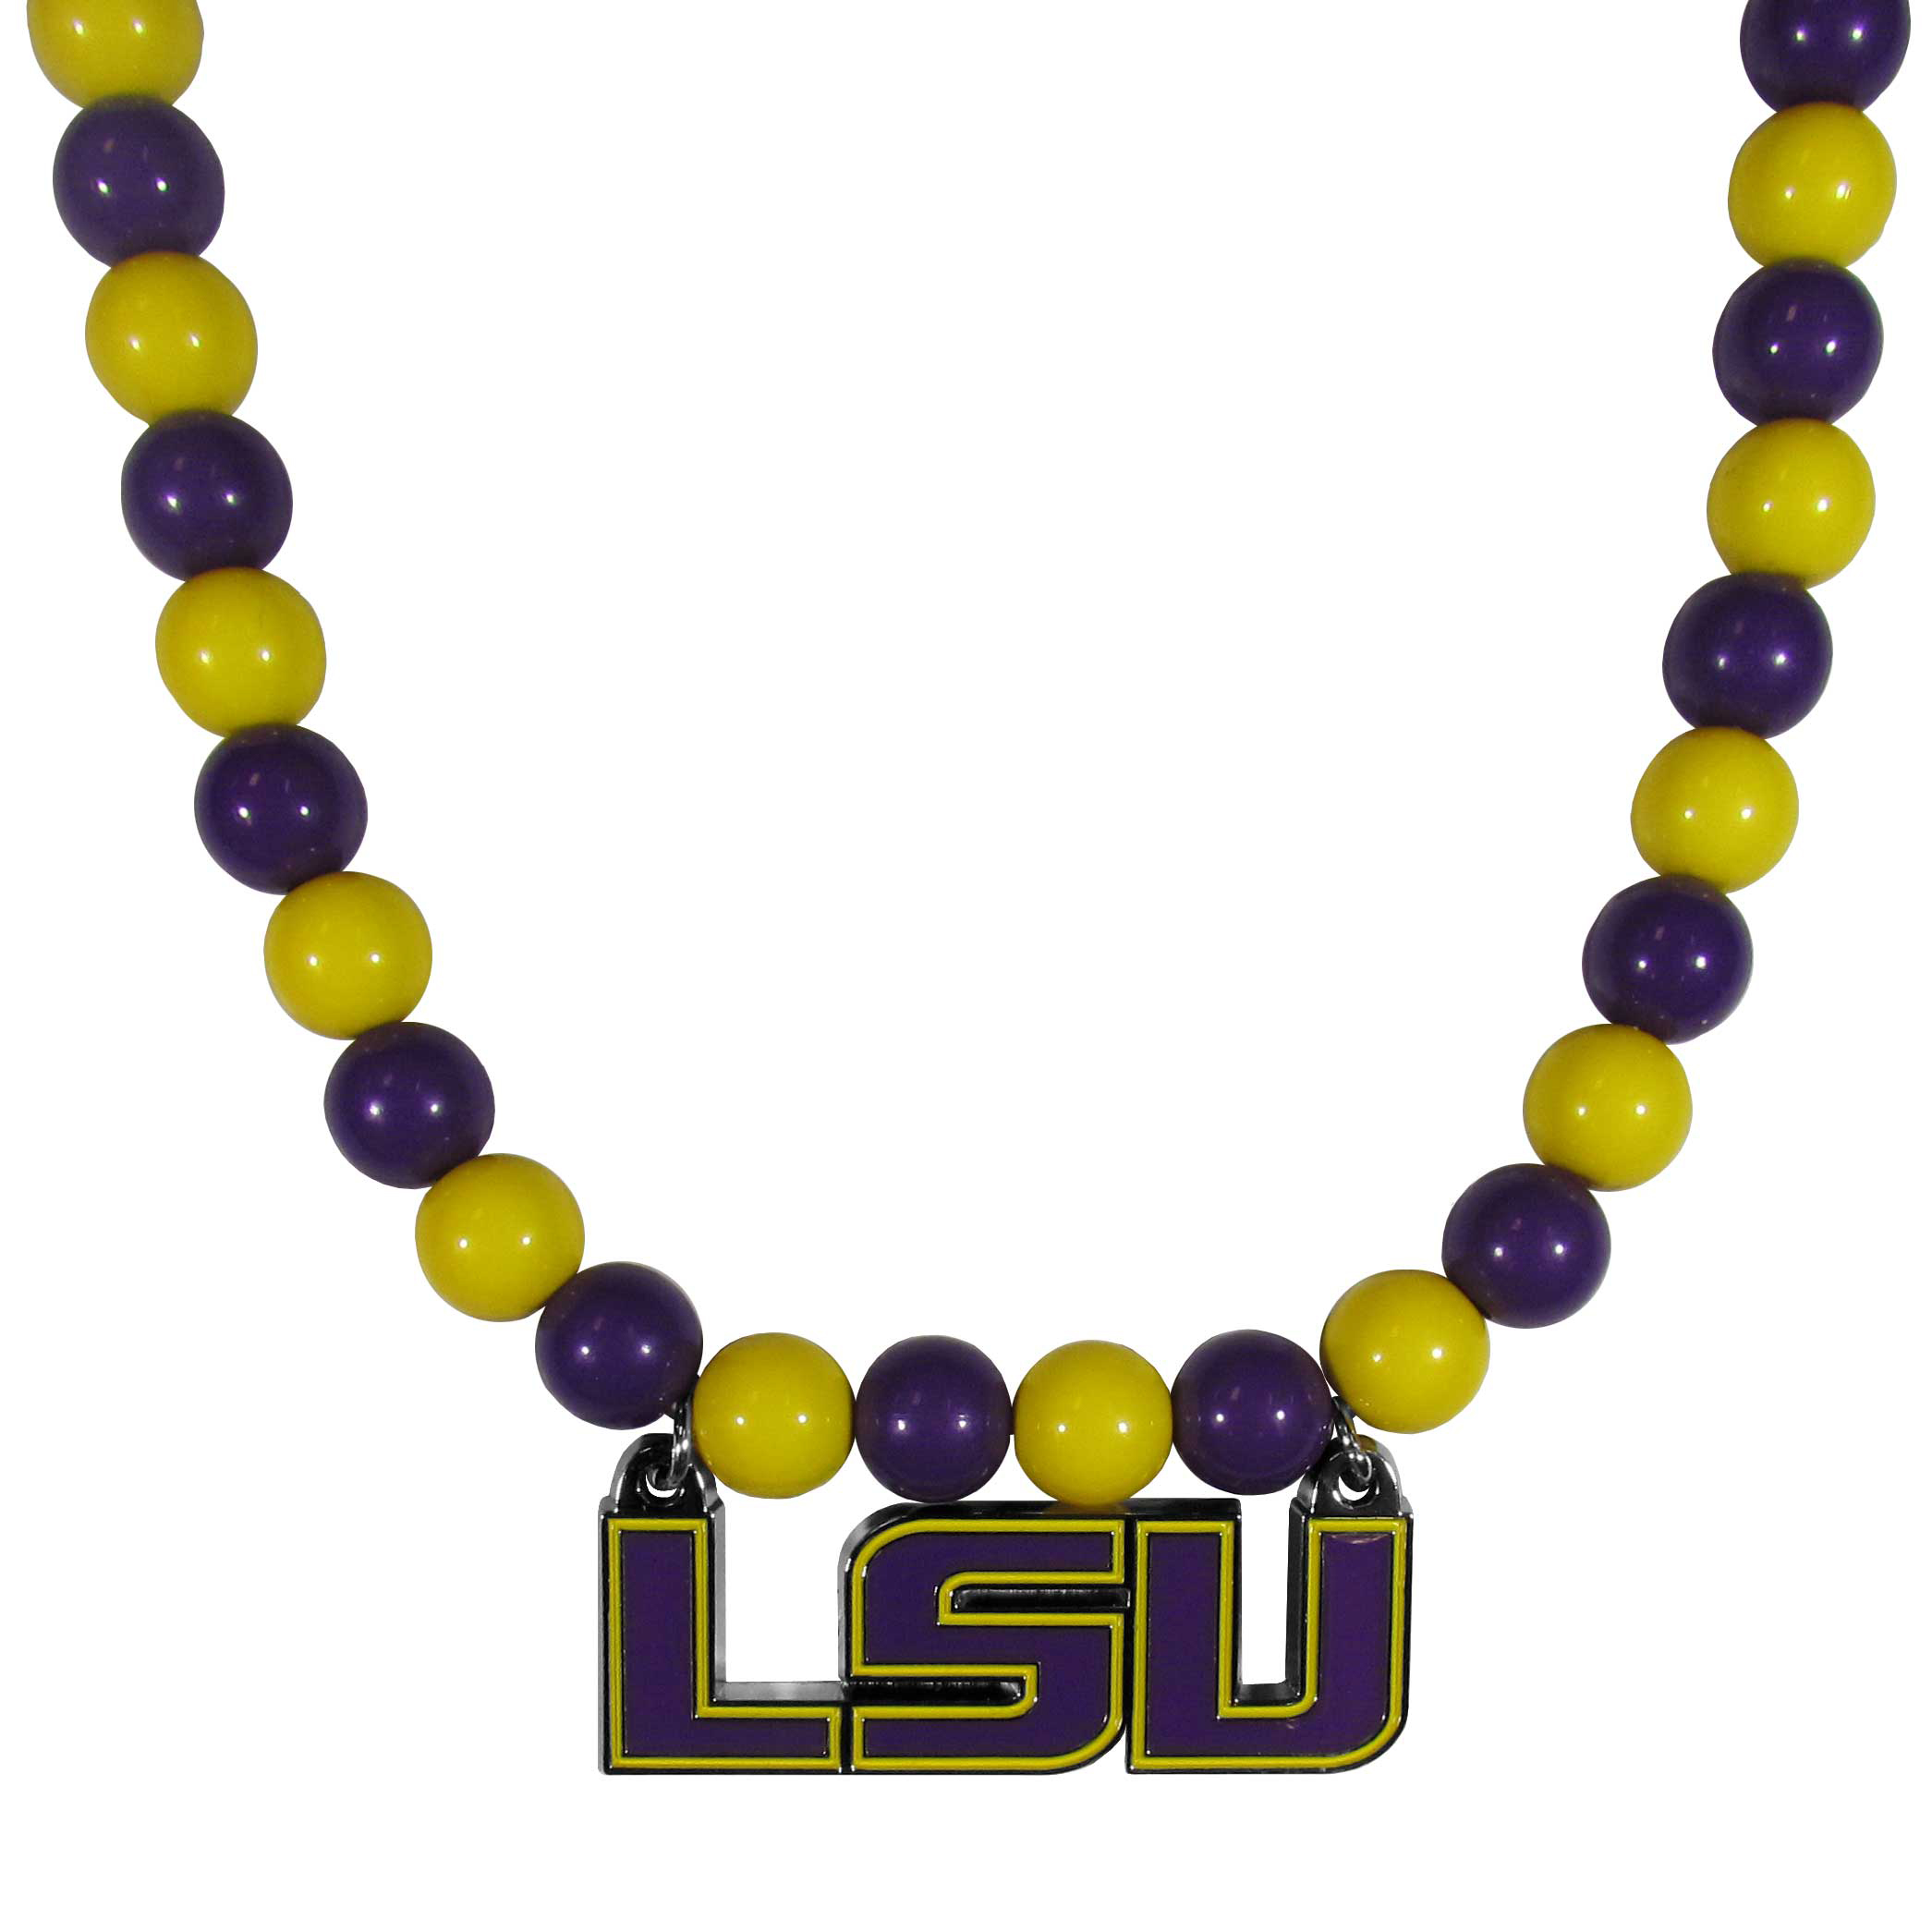 LSU Tigers Fan Bead Necklace - Make a big statement with our fan bead necklaces! These brightly colored necklace have a 24 inch string of alternating colored beads with an extra large, high-polish LSU Tigers pendant.